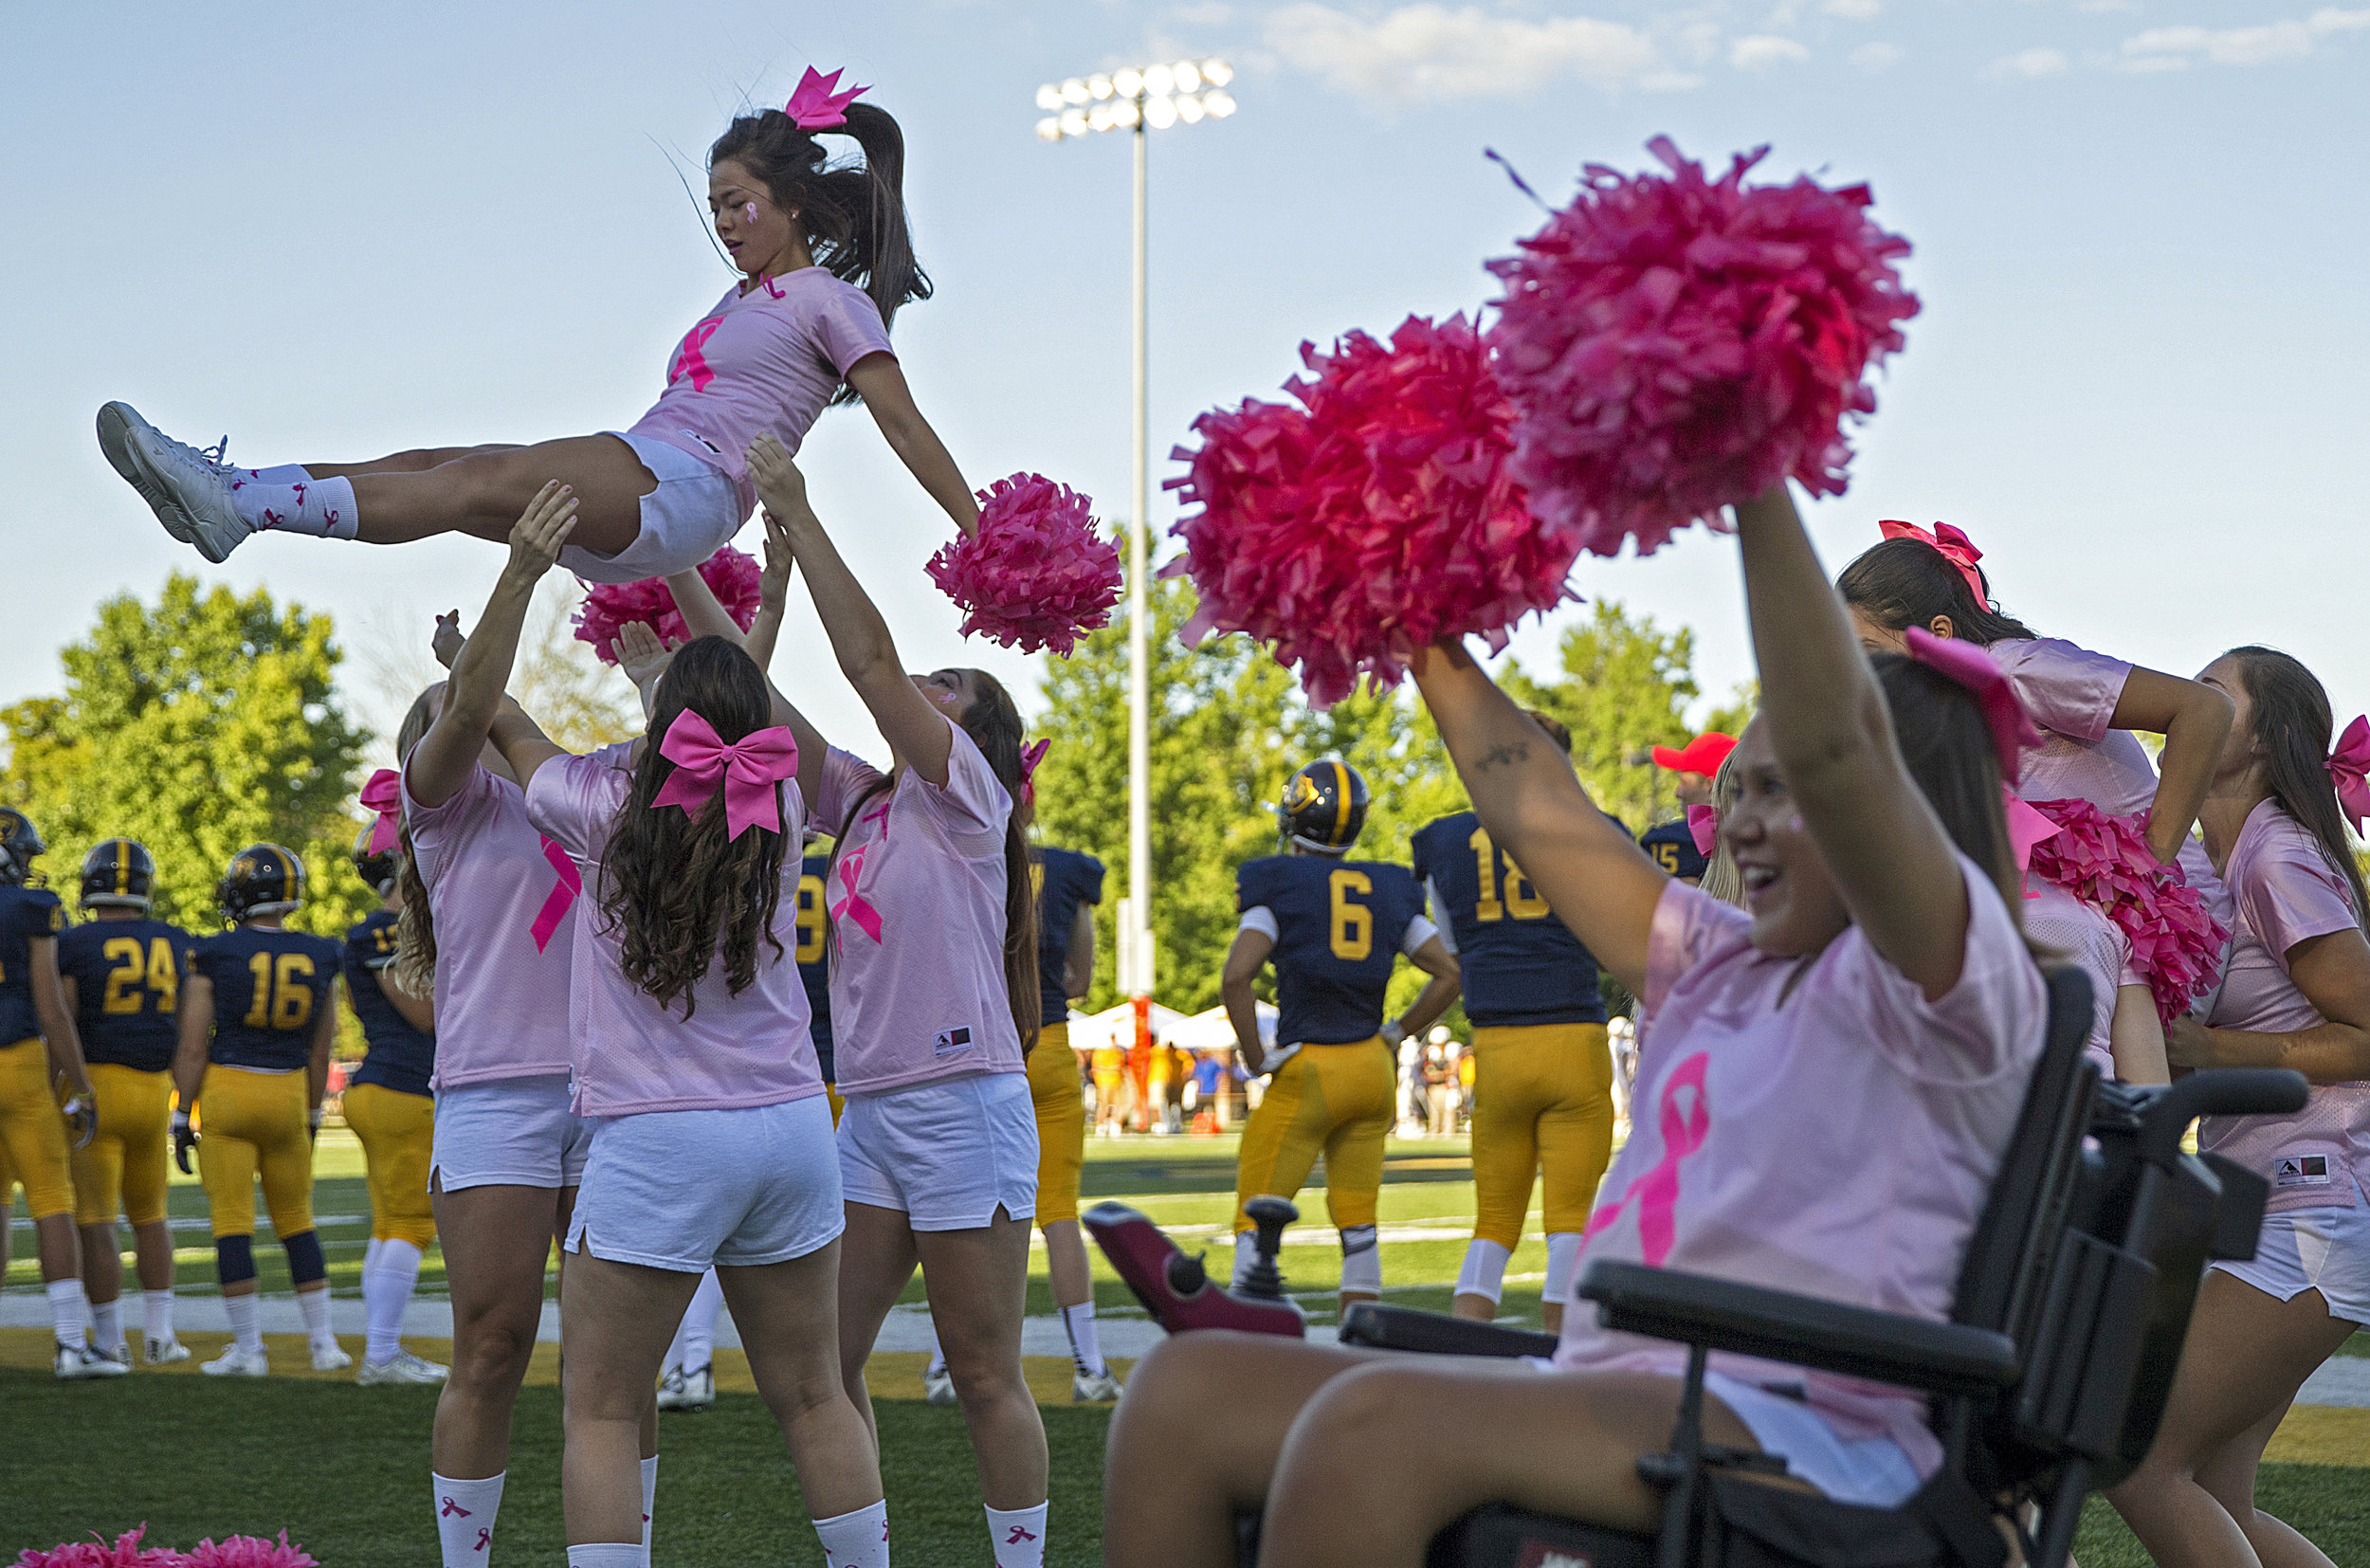 At right, Macy cheers while a other cheerleaders complete a stunt during the first game of the season at Franklin College. It took a while after her injury for Huff to realize cheerleading is not about stunts and tumbling, but instead about optimism, leadership and being a role model for young girls.